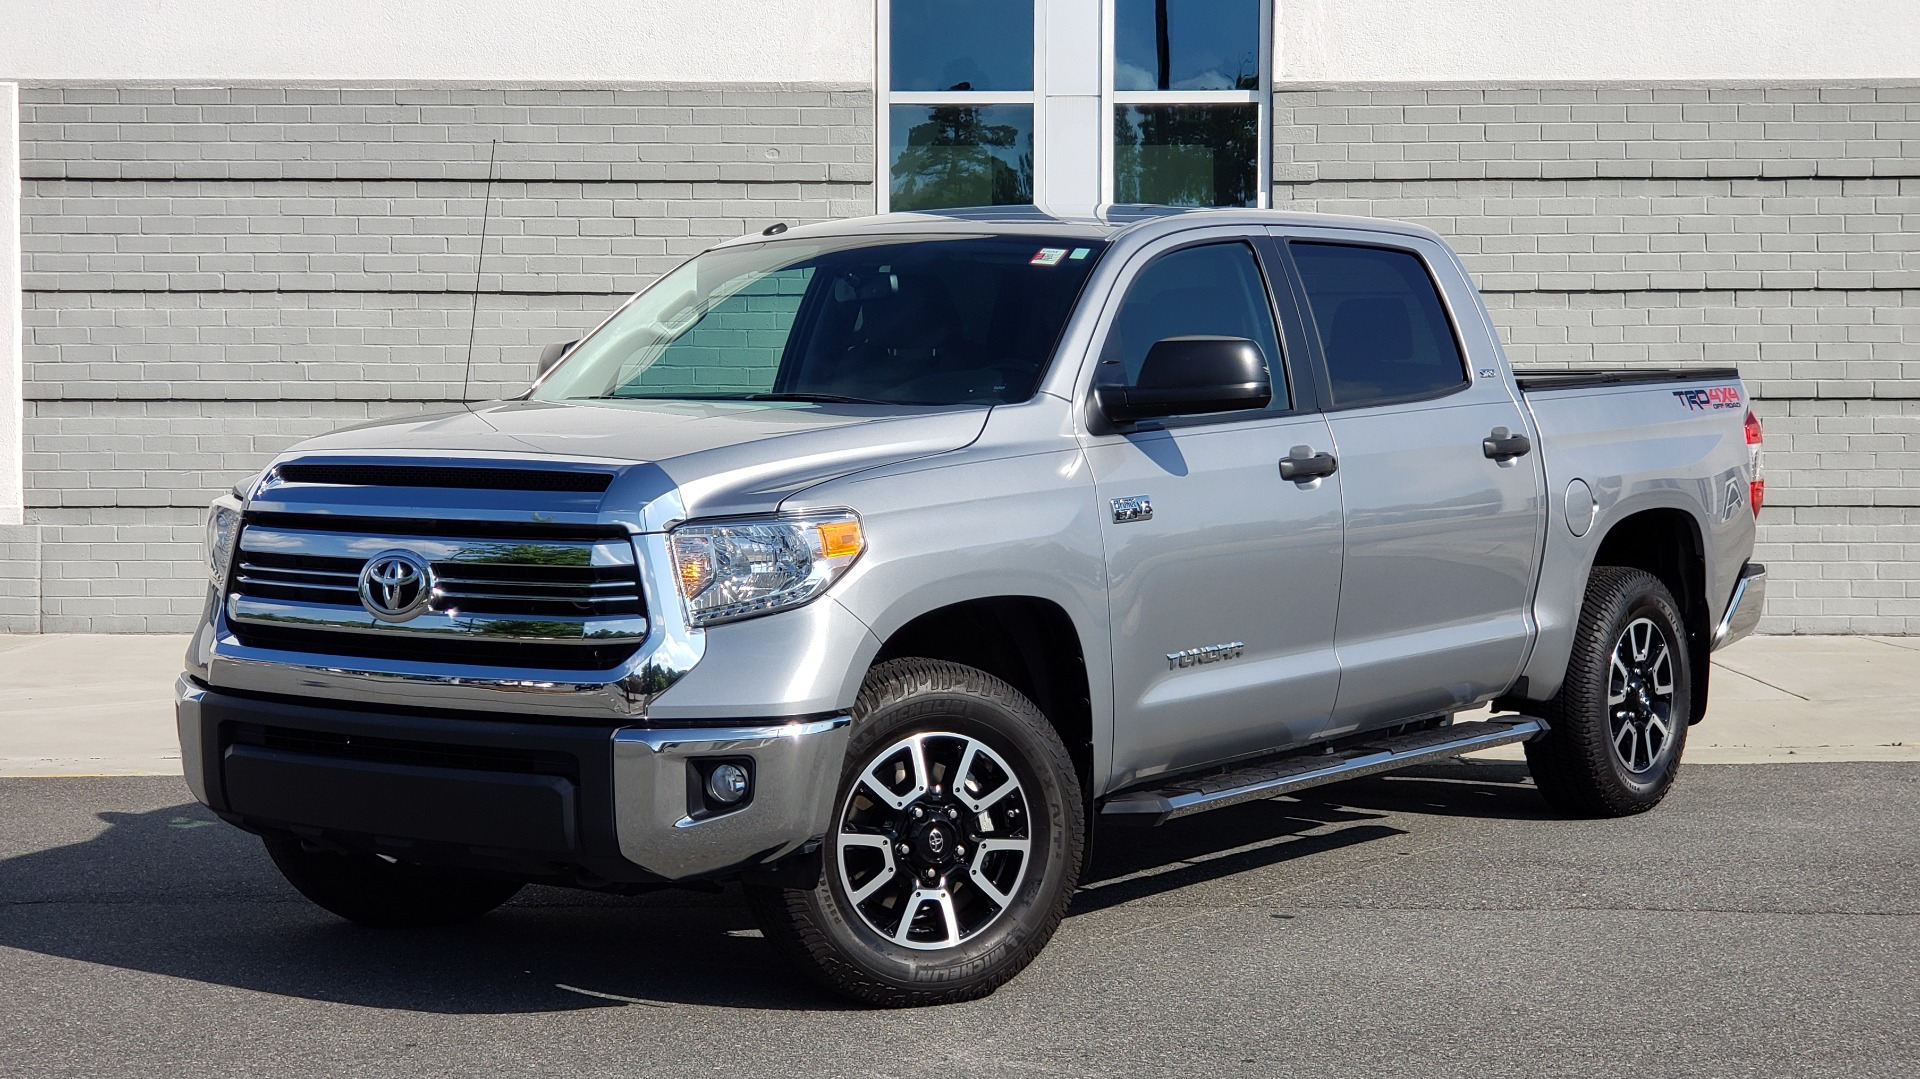 Used 2017 Toyota TUNDRA 4WD SR5 CREWMAX / 5.7L V8 / 6-SPD AUTO / NAV / REARVIEW for sale $44,395 at Formula Imports in Charlotte NC 28227 1